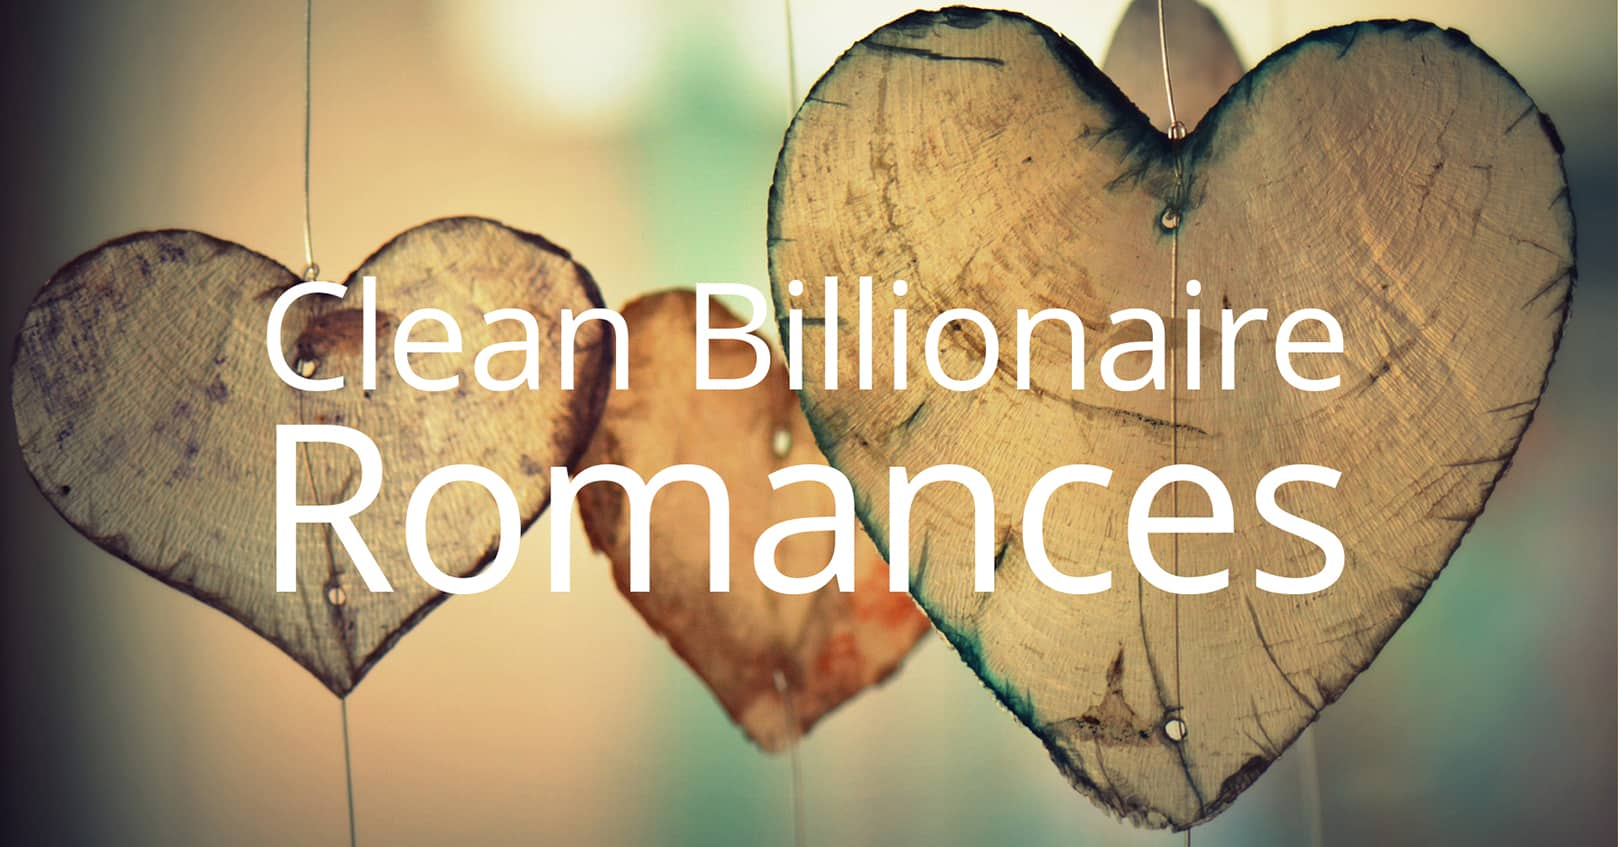 clean billionaire romances